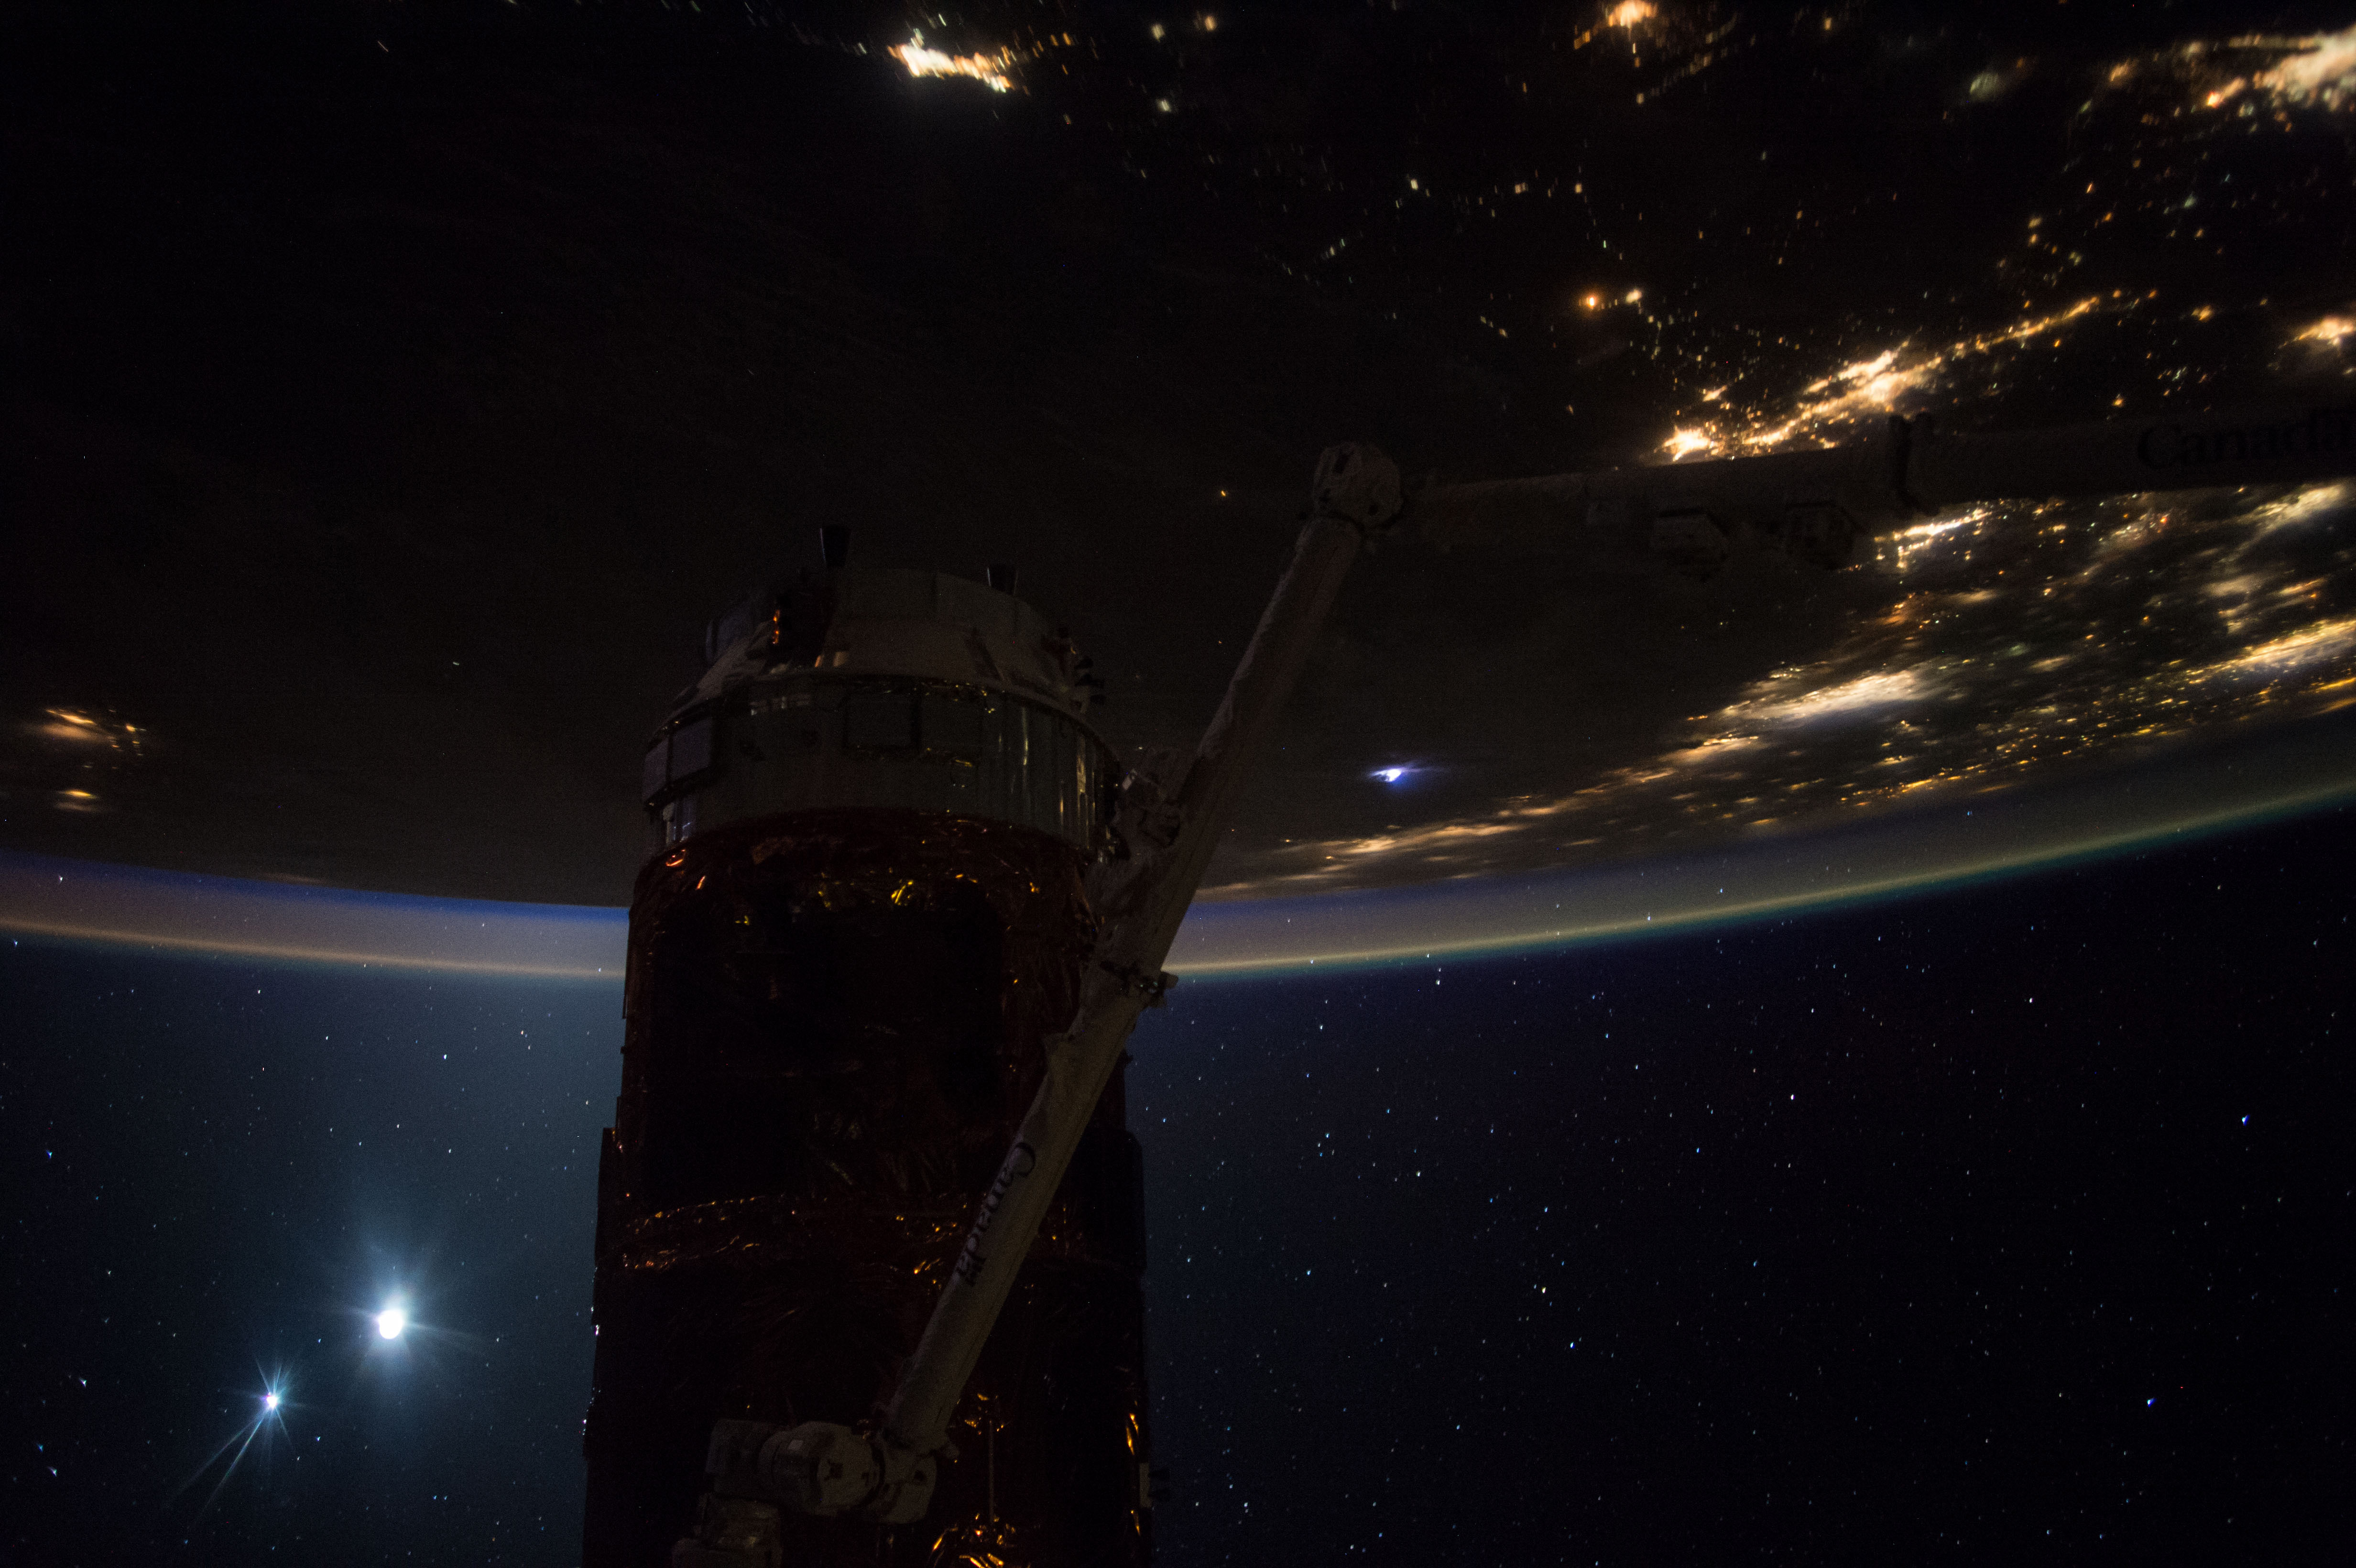 NASA : Good Morning From the International Space Station ...